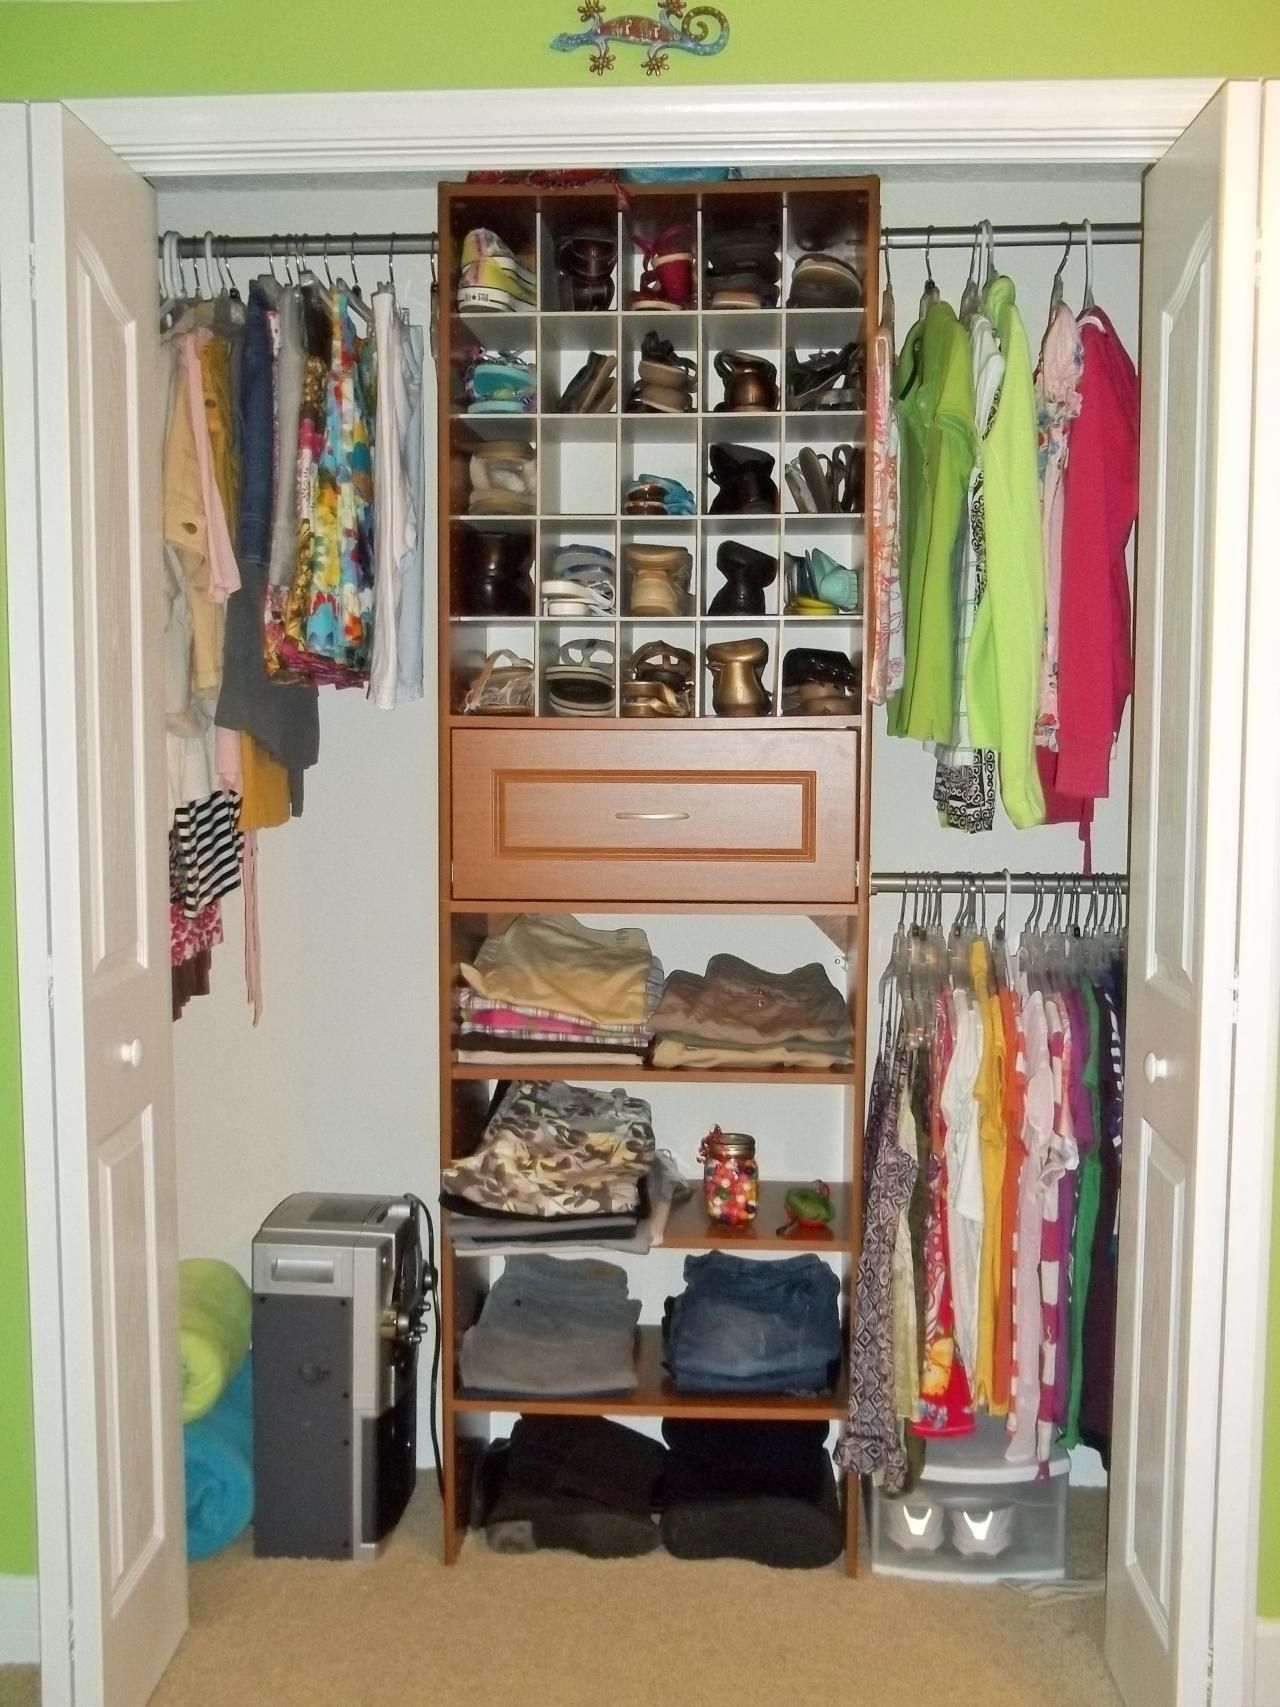 Sketch of small bedroom closet organization ideas for Bedroom organization ideas